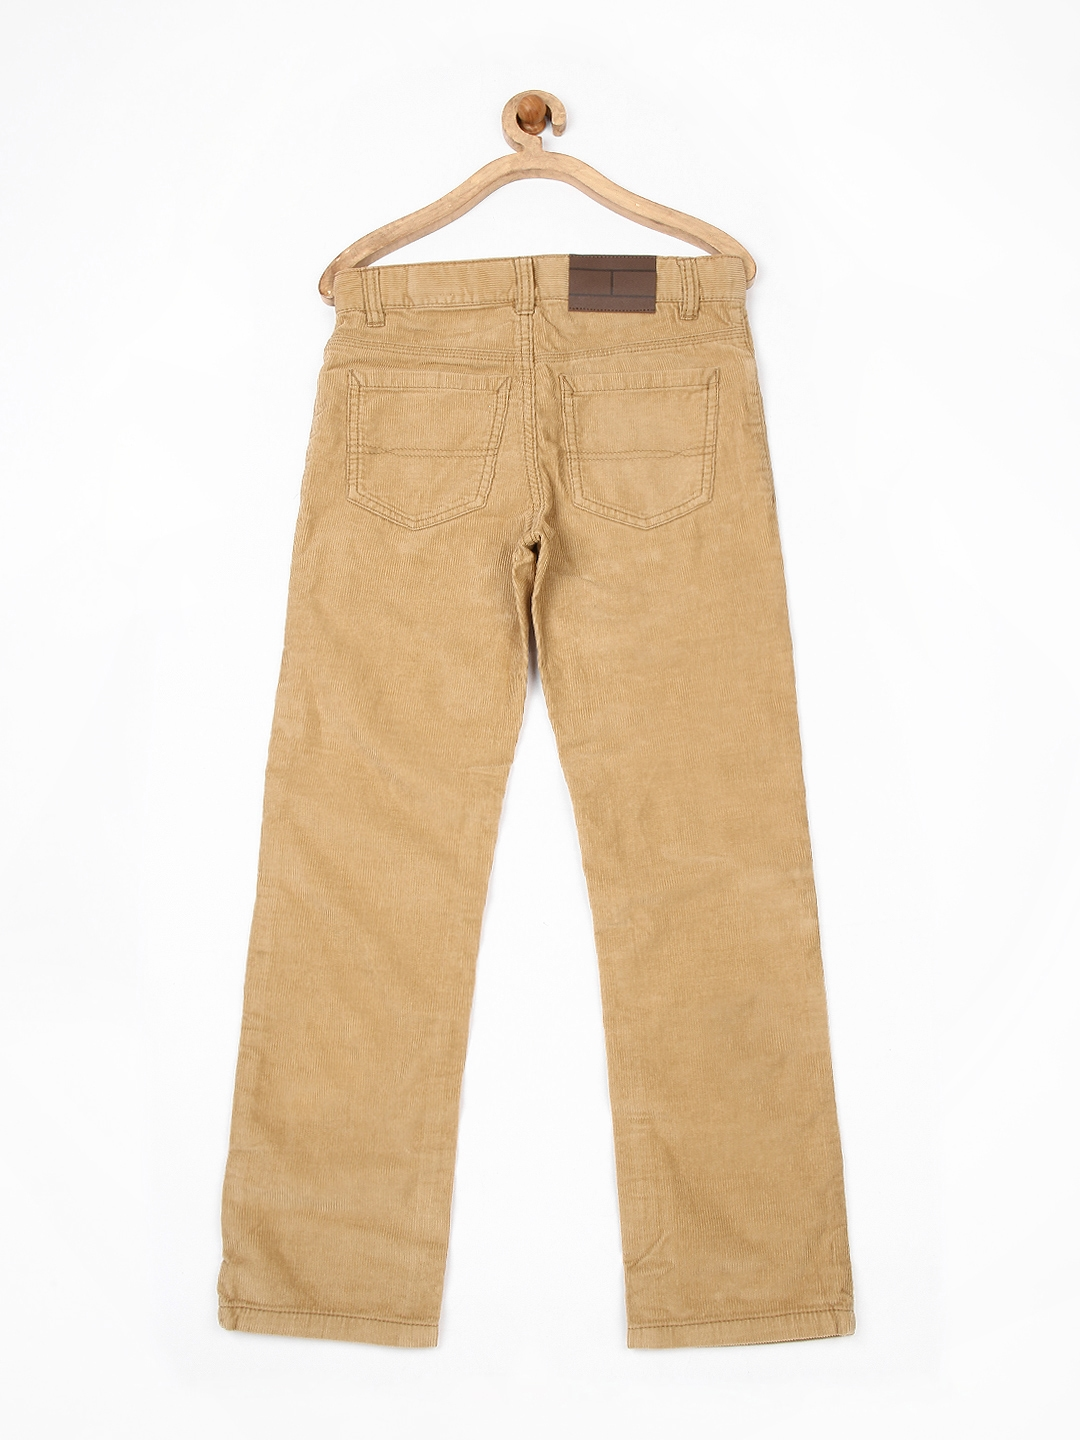 a94d2ef853e16 Buy Tommy Hilfiger Boys Light Brown Corduroy Trousers - Trousers for ...